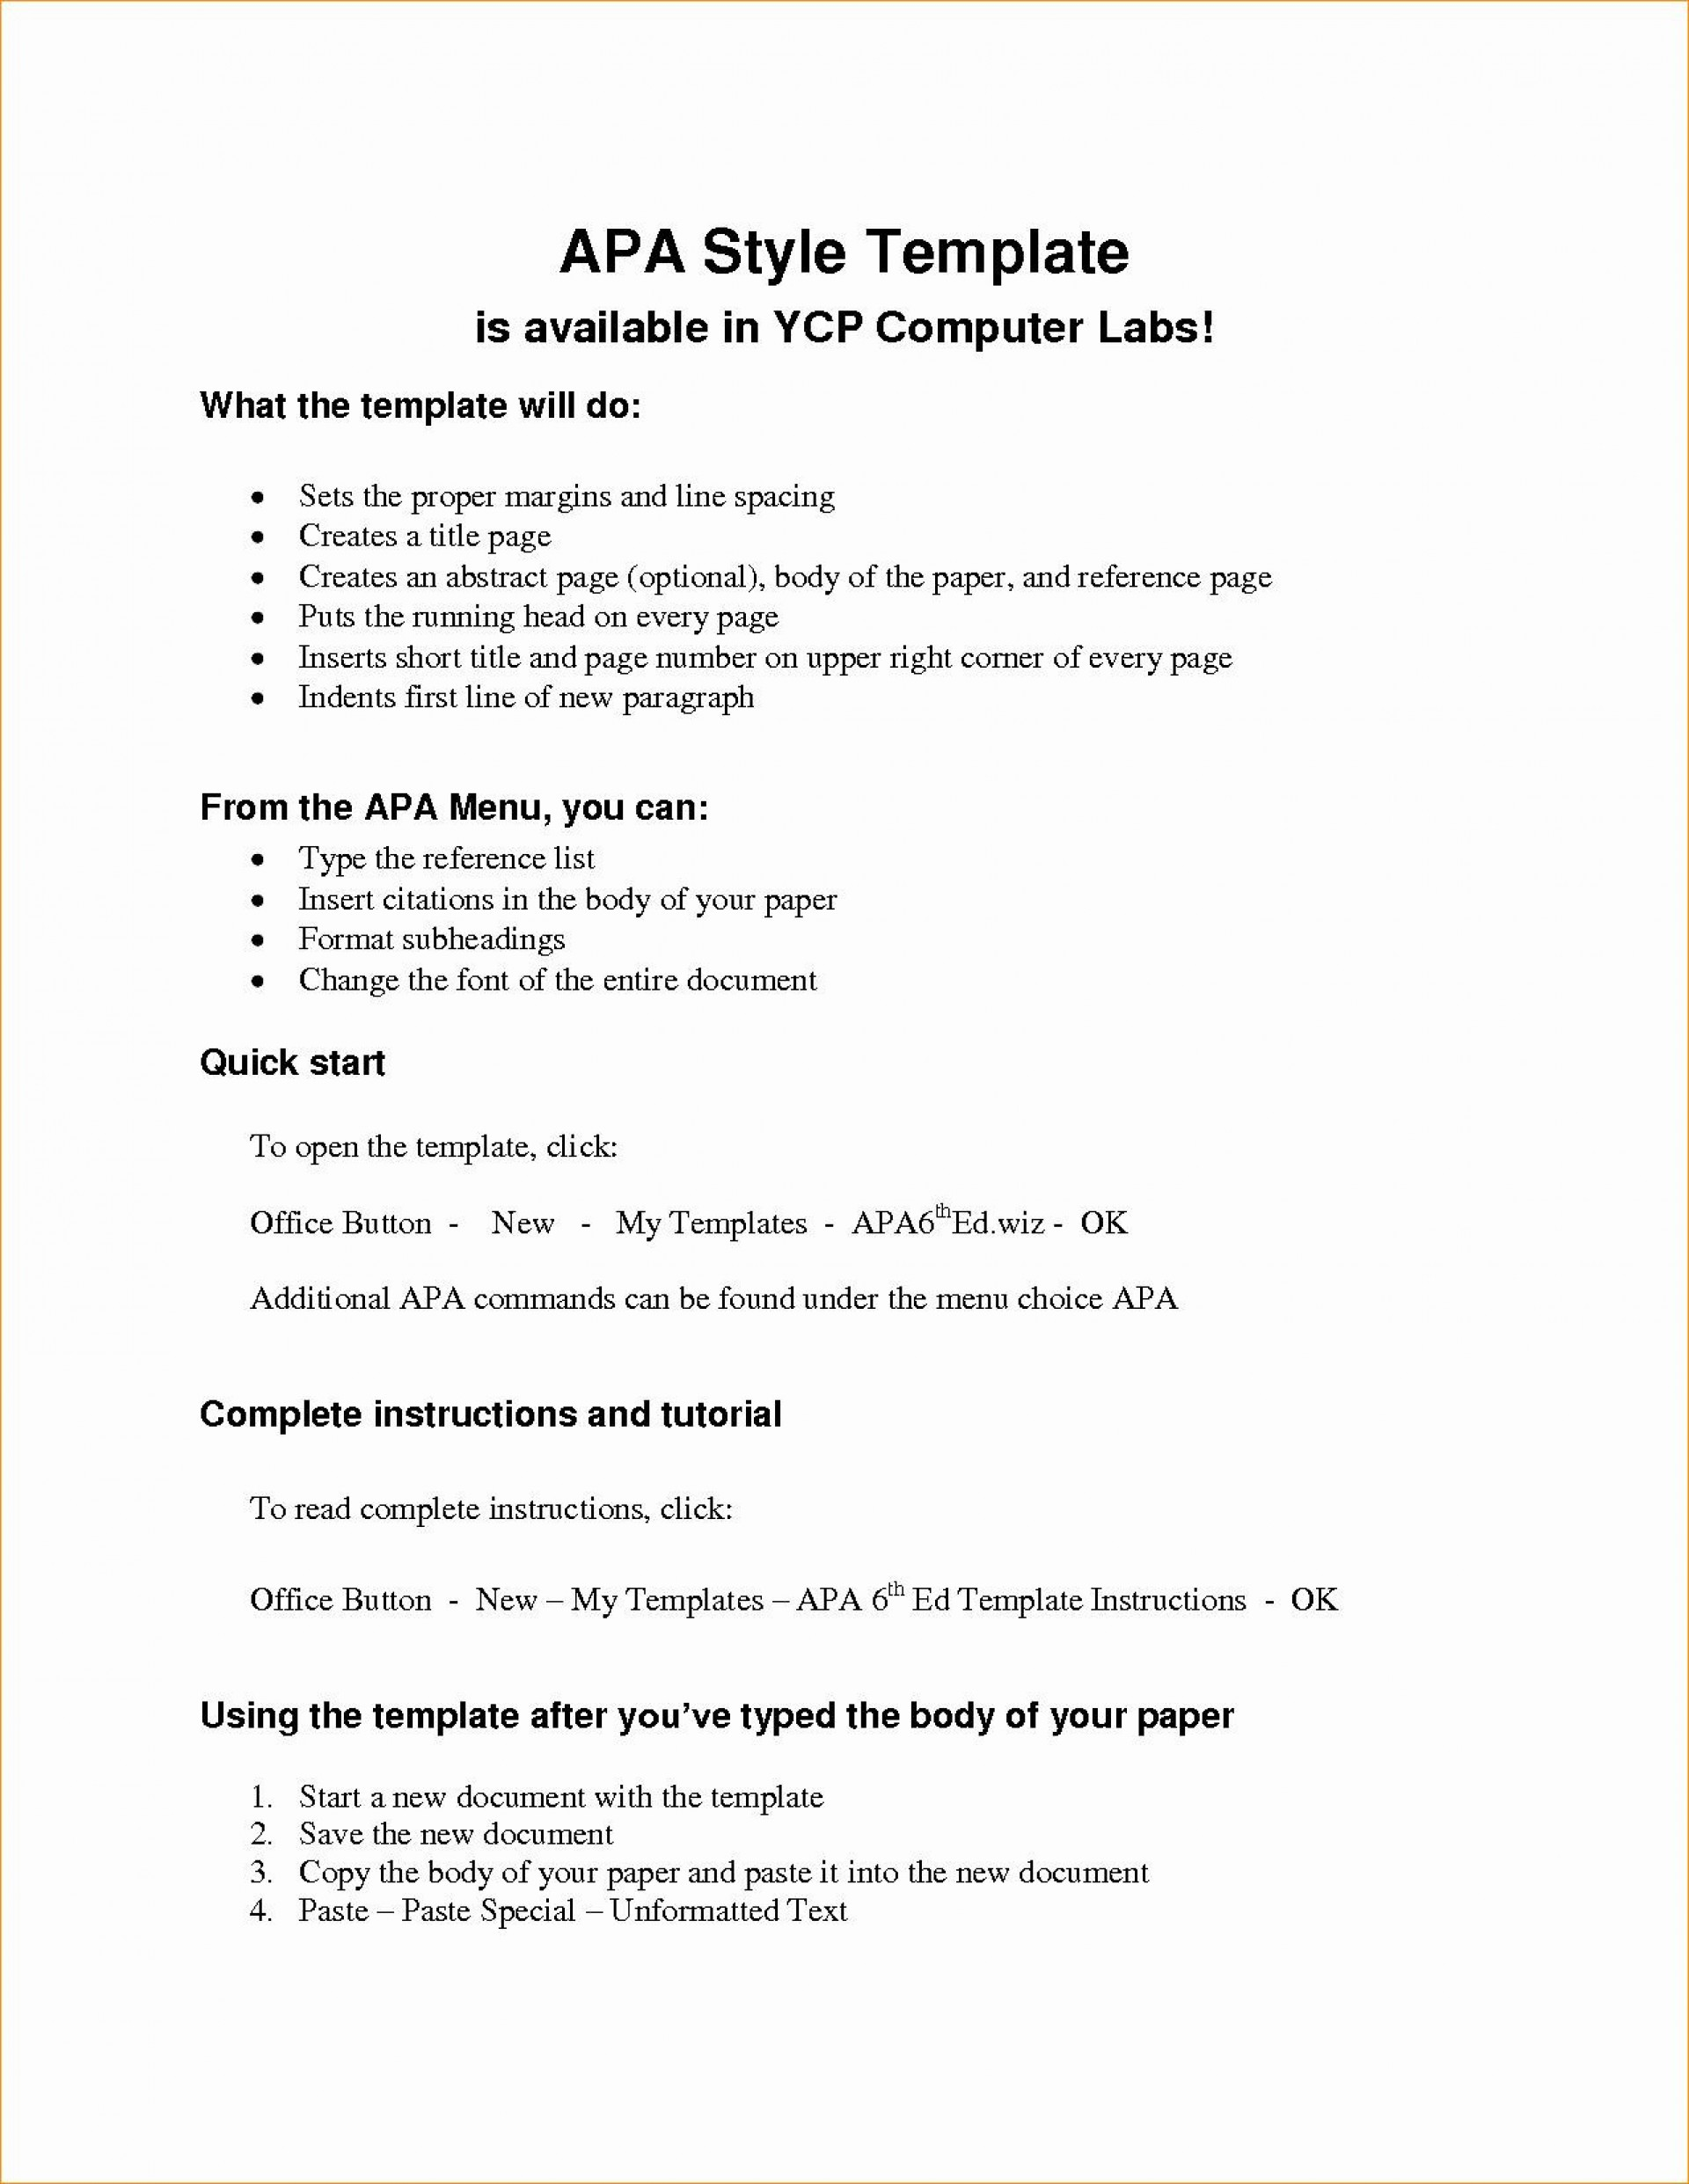 016 Research Paper Cover Letter Apa Style Template Awesome Beautiful Format For Resume Best Fresh Fascinating 1920